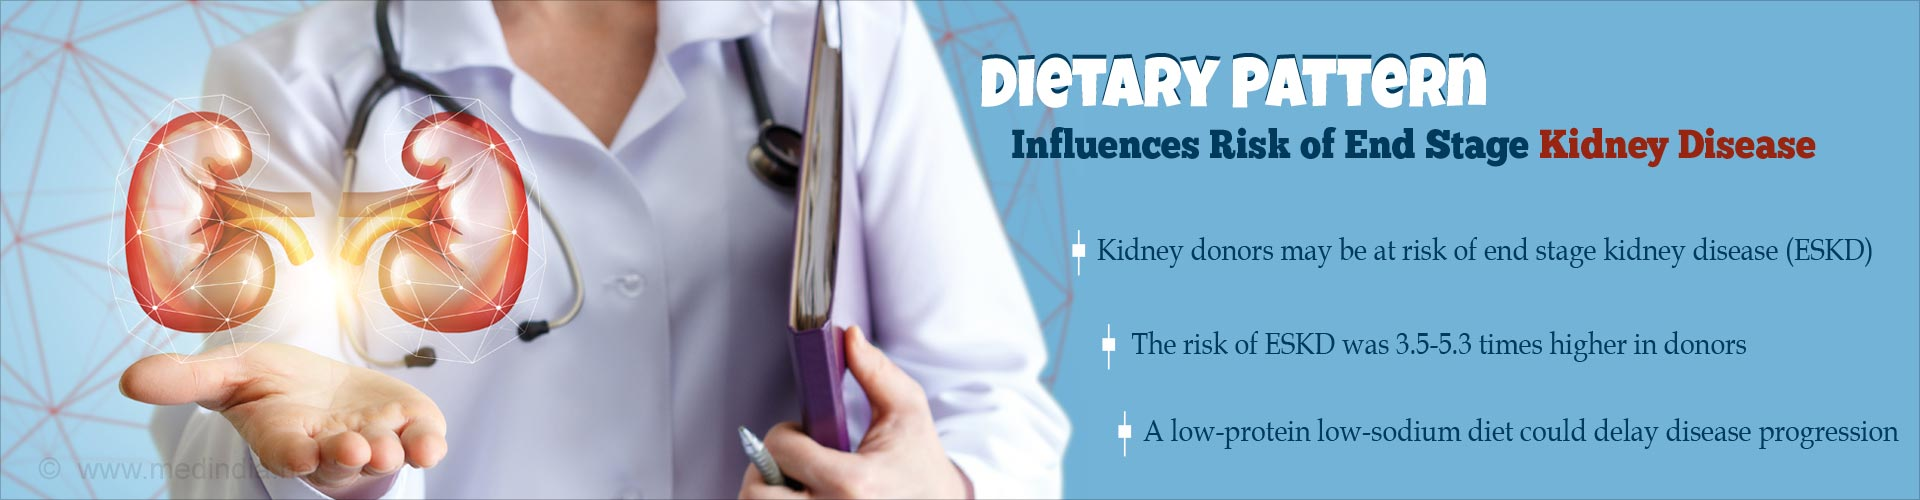 What Diet Should You Follow After Surgical Removal of Kidneys